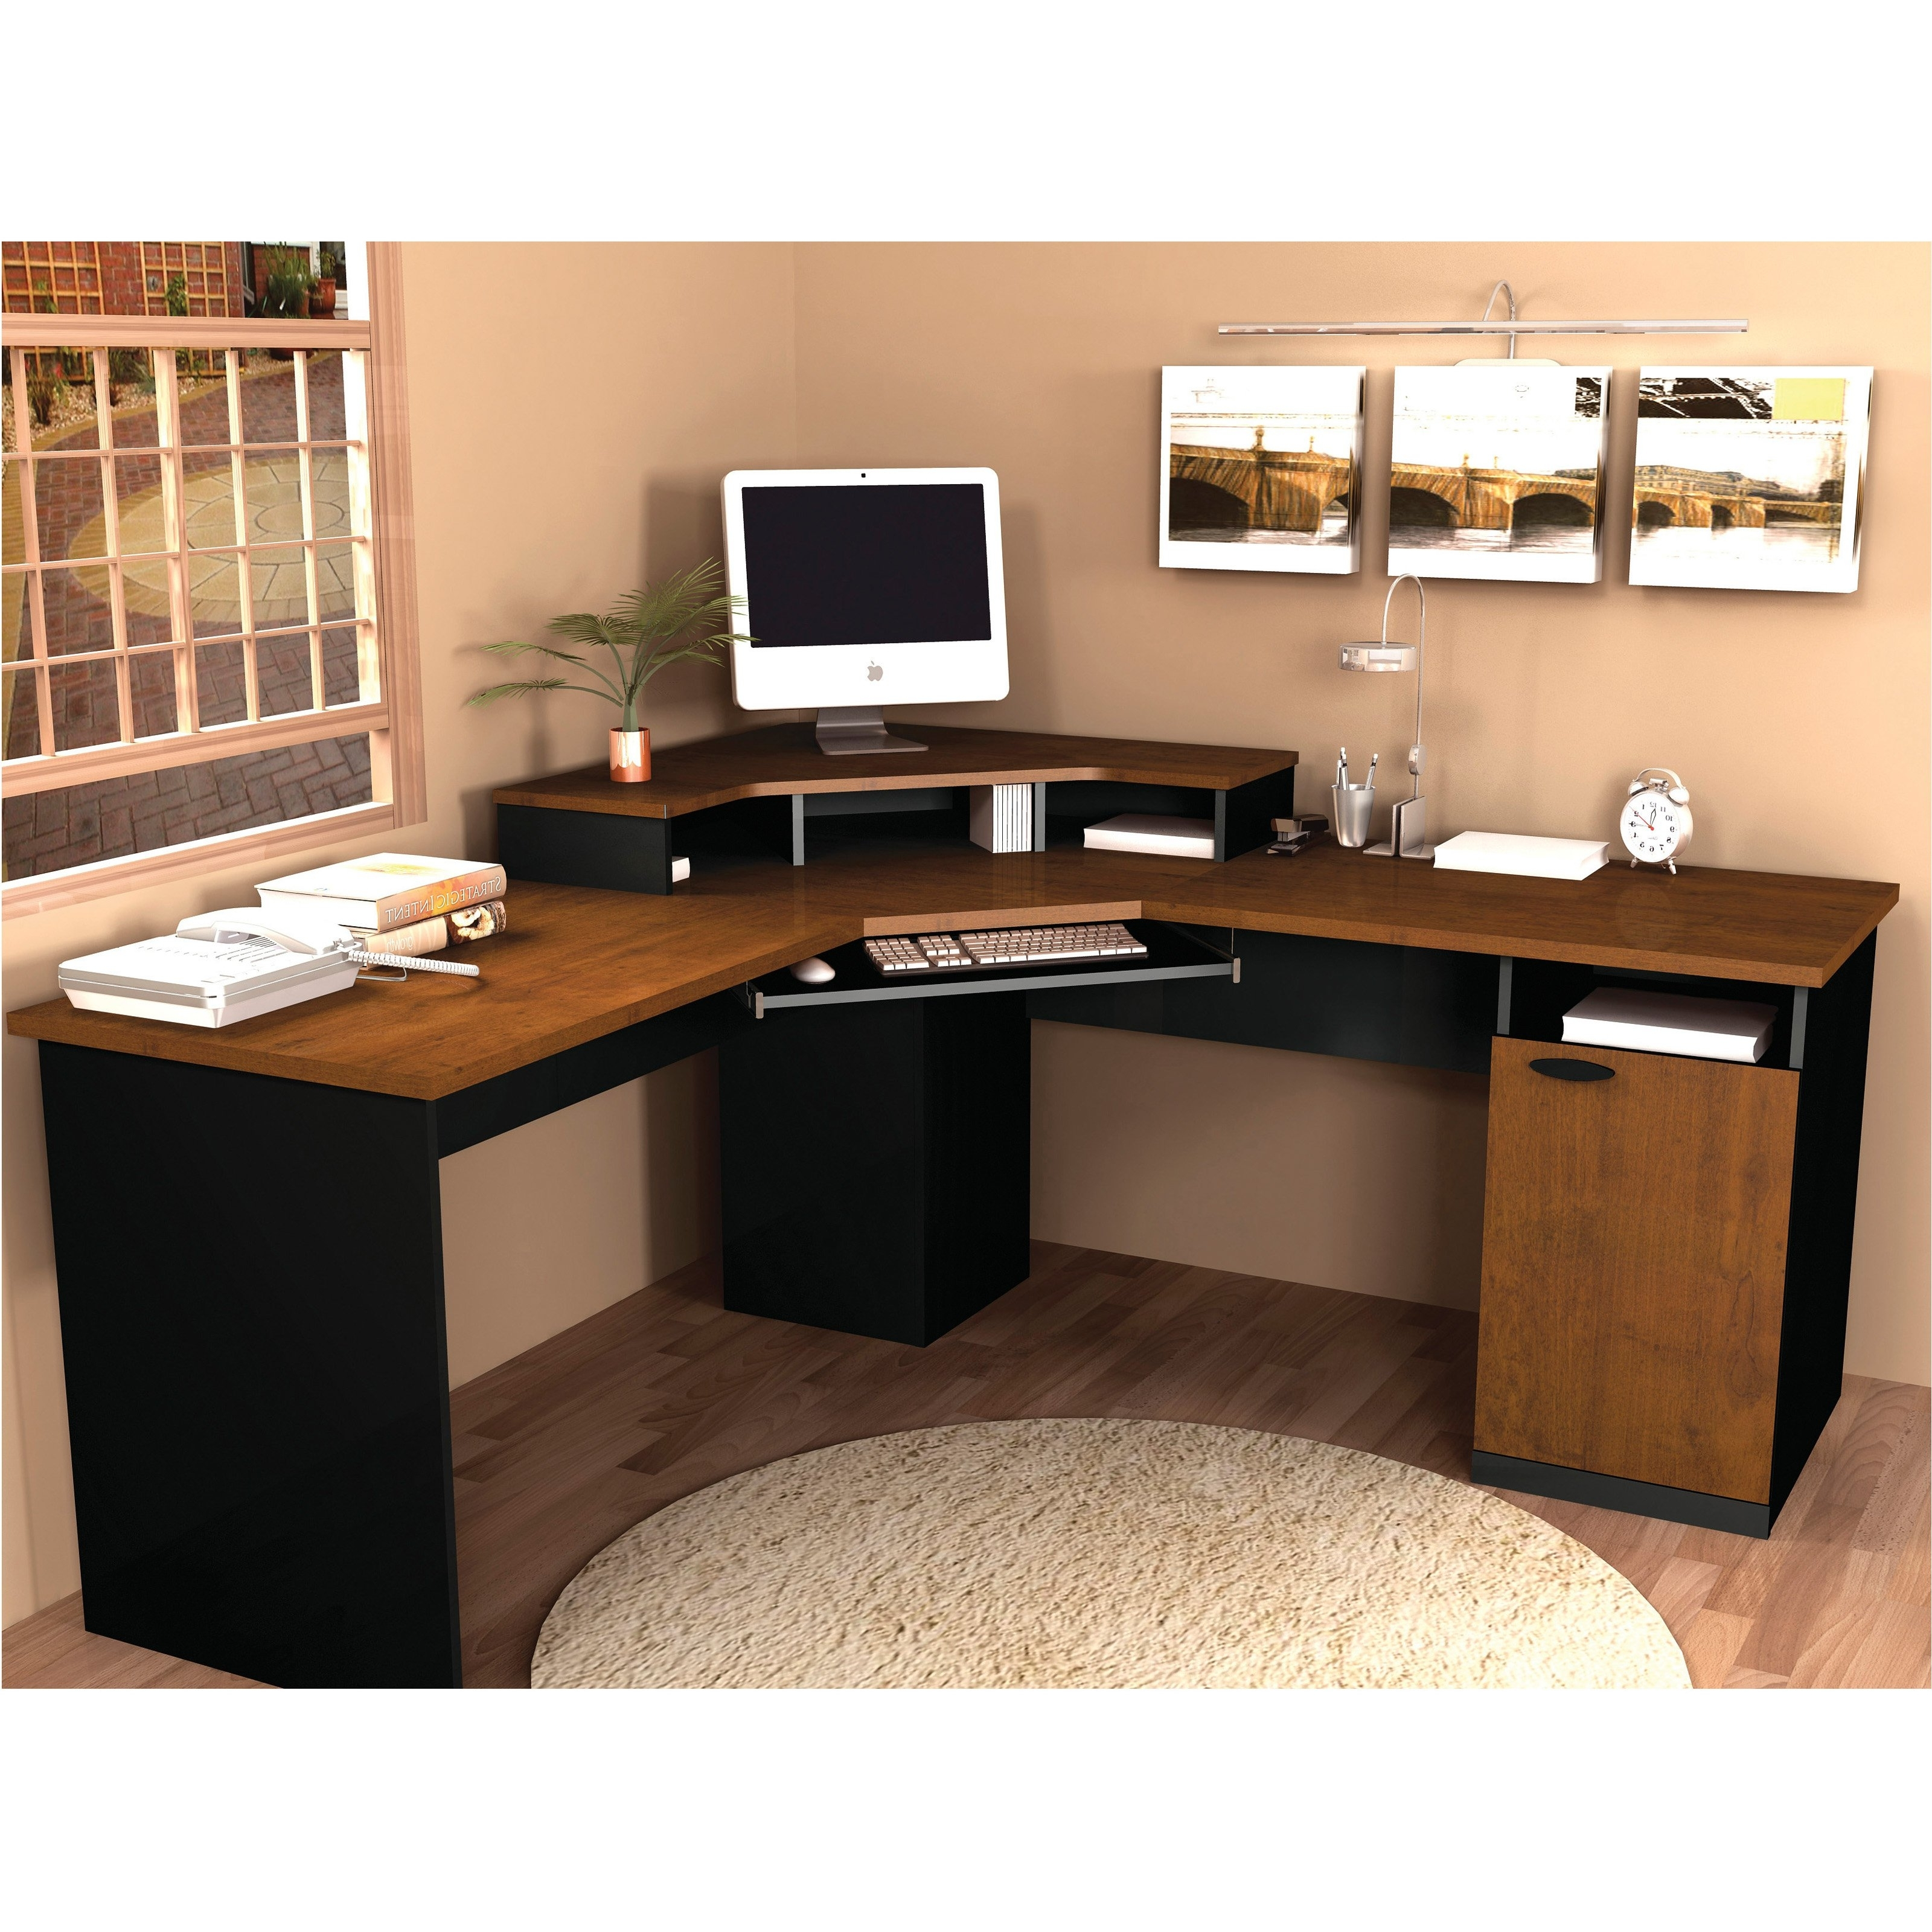 Most Up To Date Computer Desks For Home Intended For Shelf : Home Computer Desks Interior Design For Office Tips Supply (View 13 of 20)